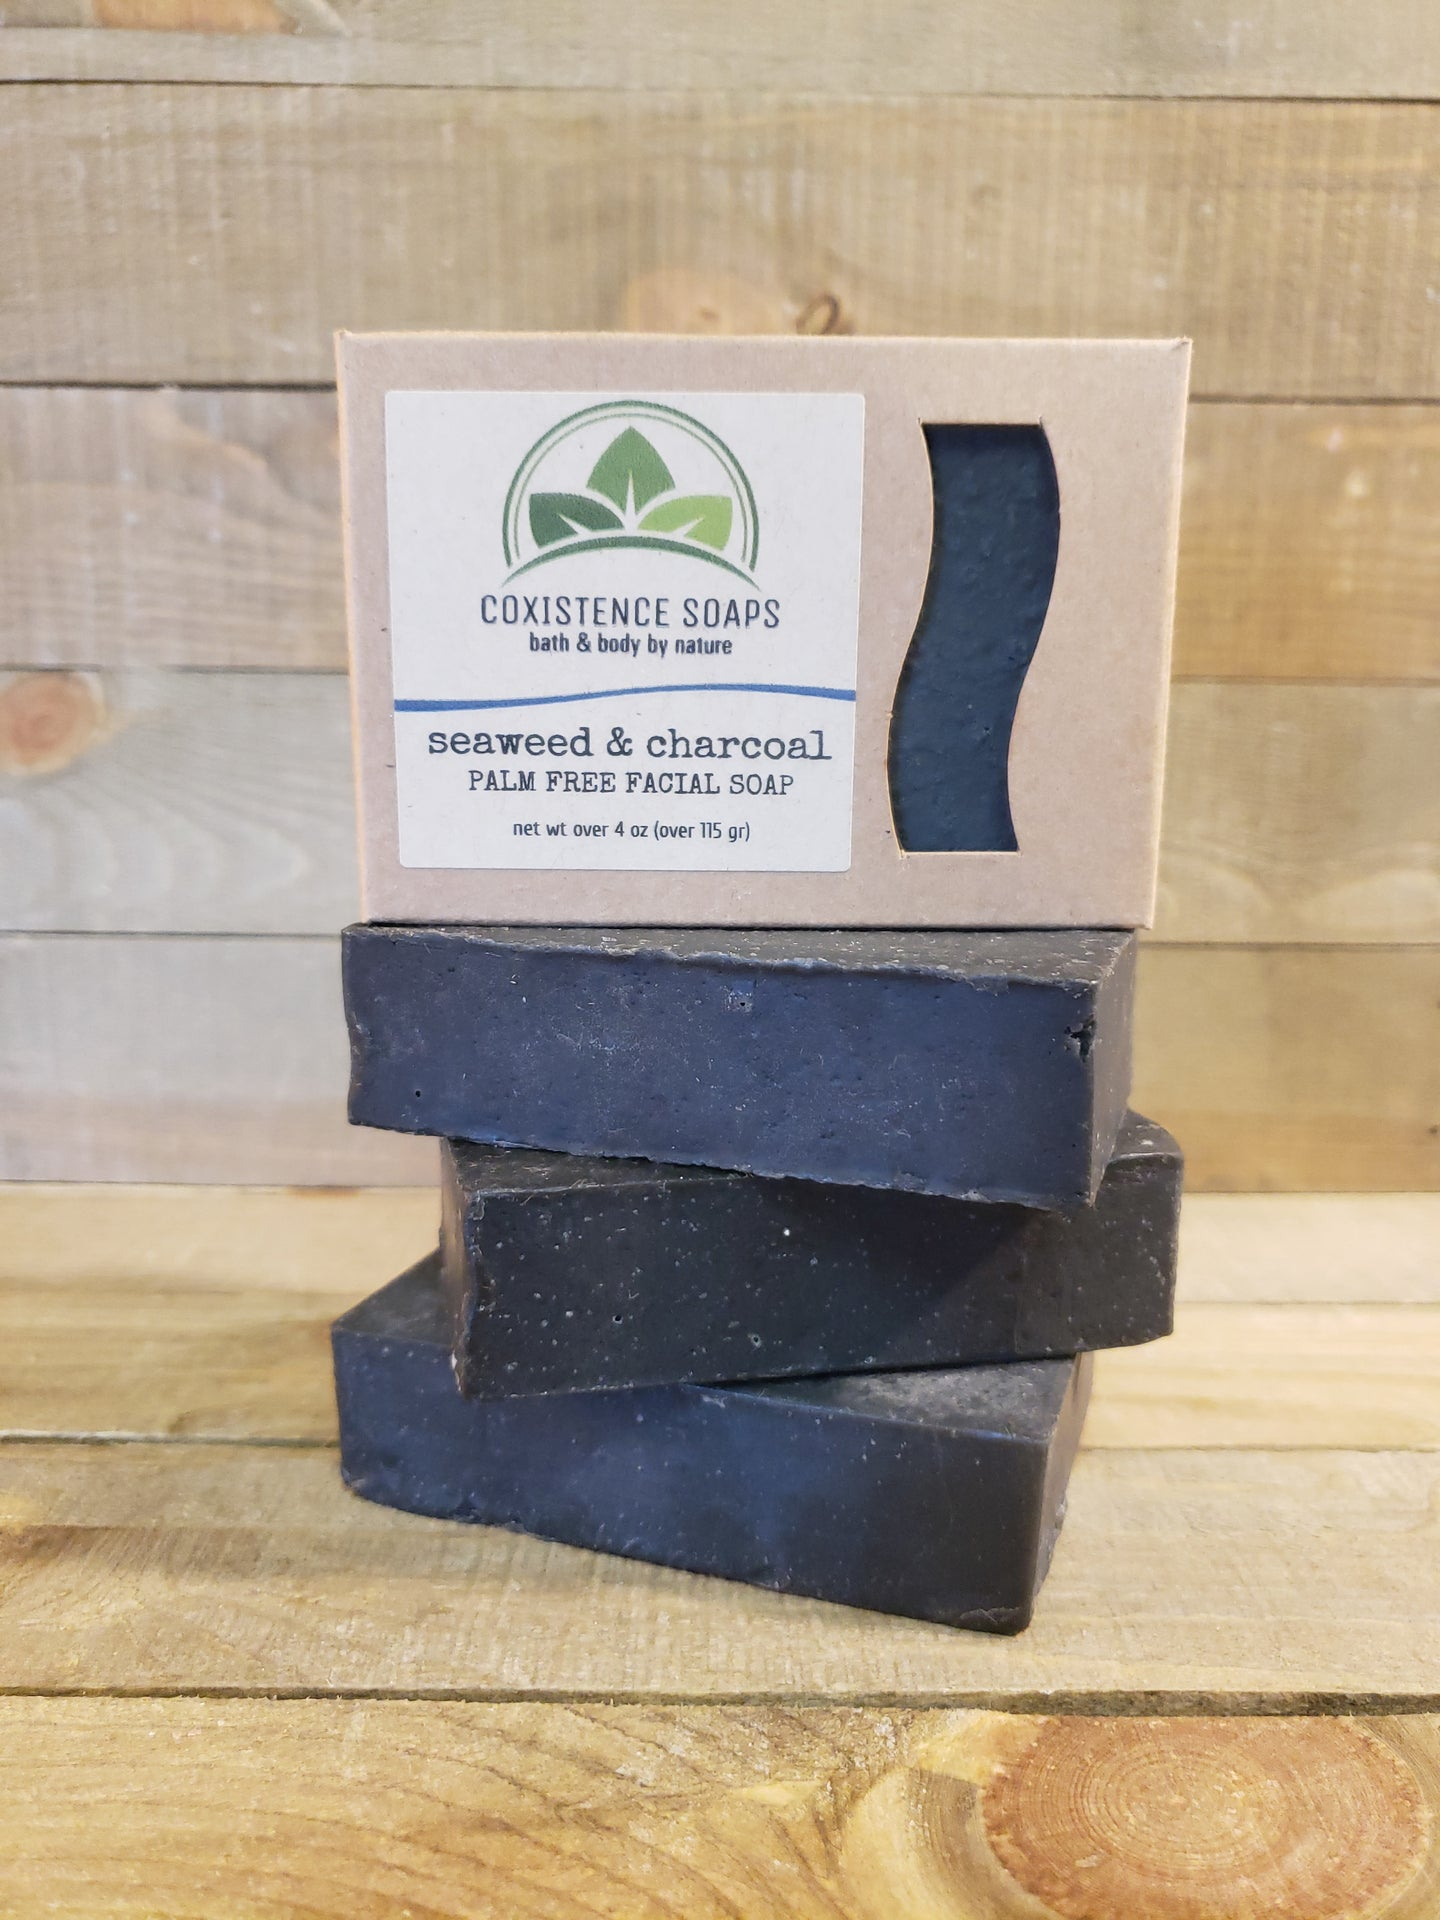 Seaweed & Charcoal (palm free facial soap)